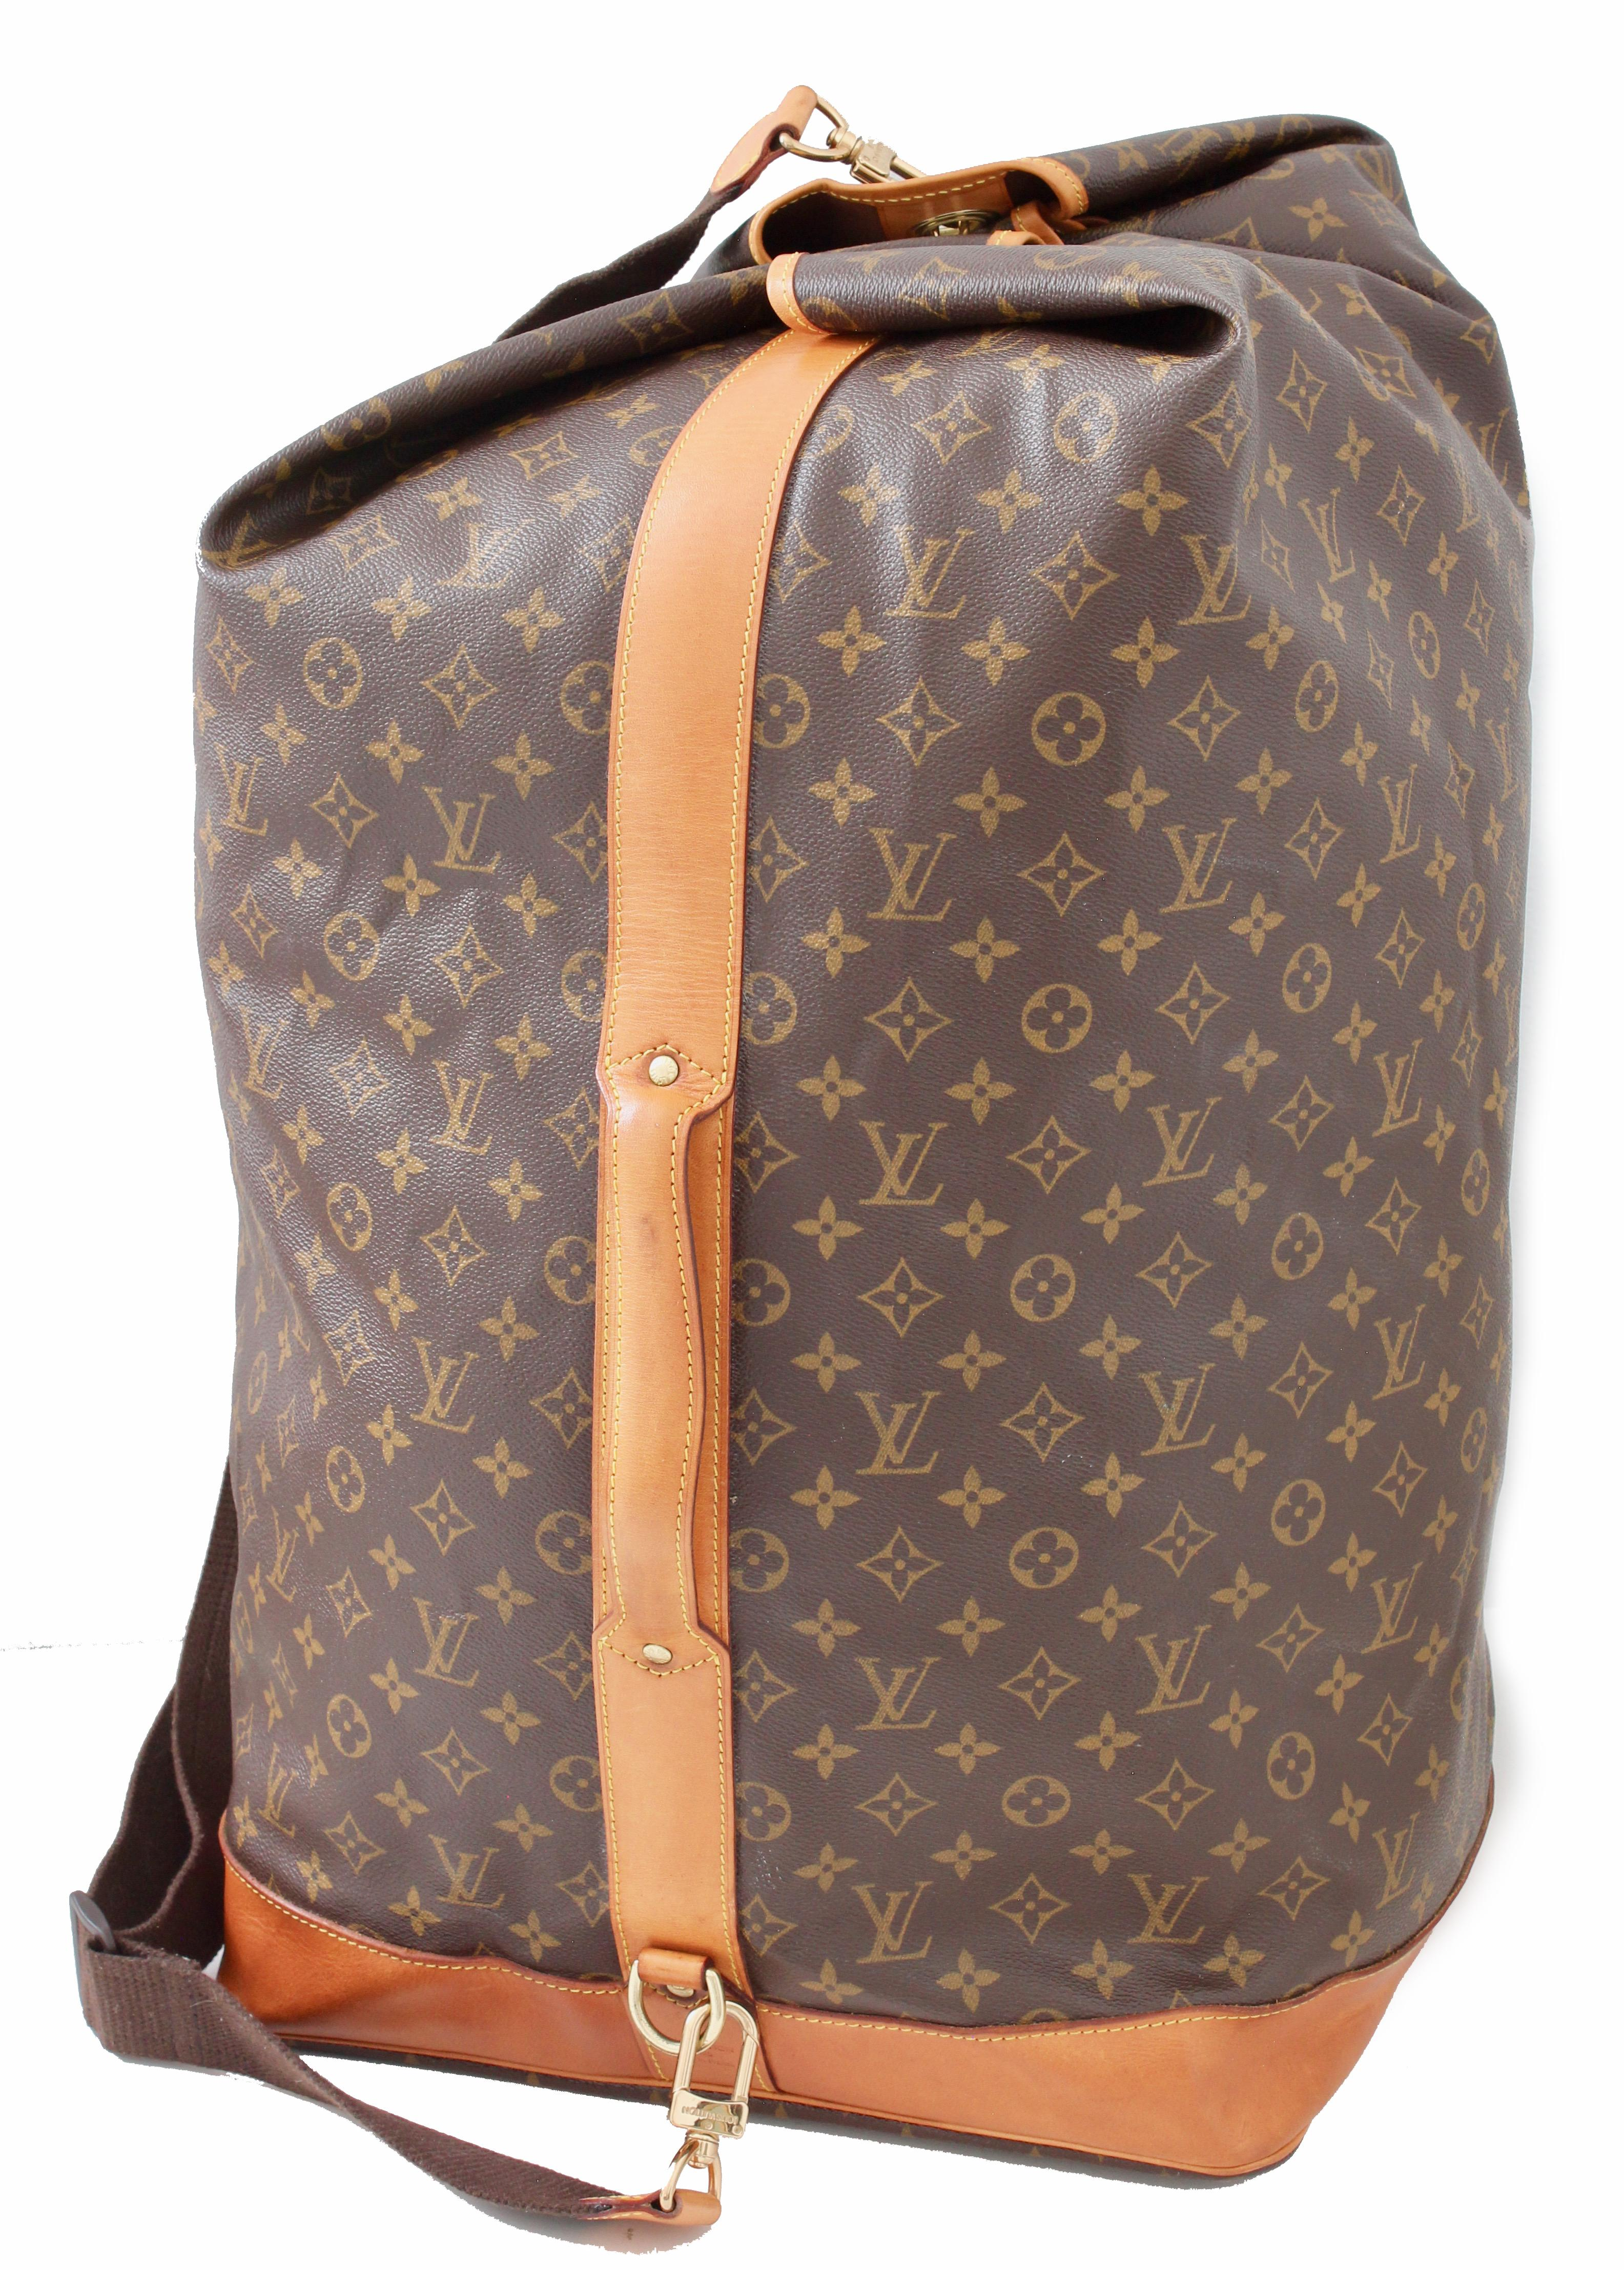 913d9b85c18f Louis Vuitton Sac Marin Sailor Bandouliere GM Travel Luggage Monogram  Canvas For Sale at 1stdibs